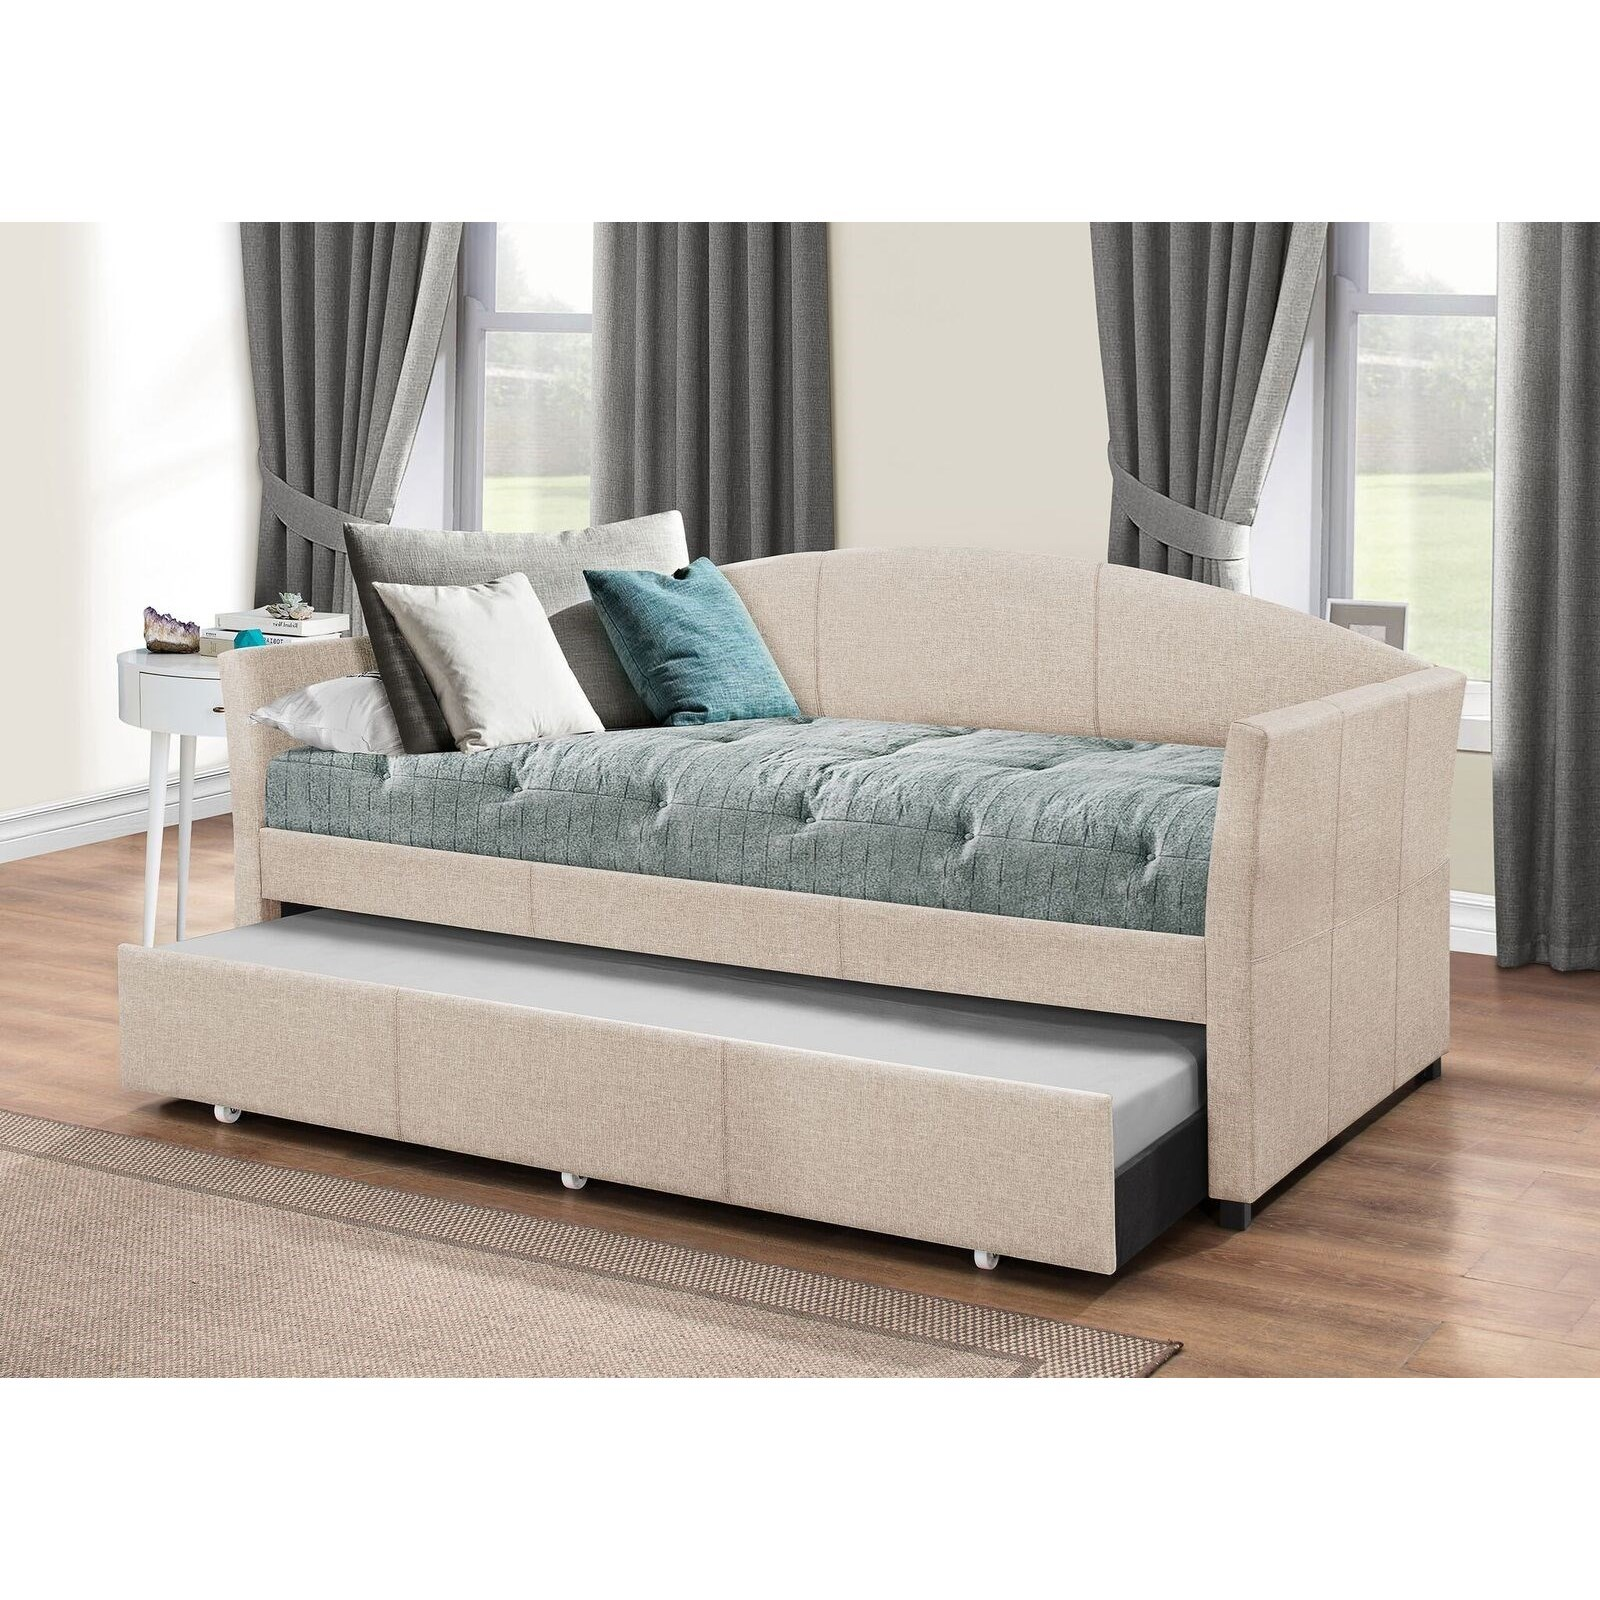 Daybeds Daybed Set by Hillsdale at SuperStore